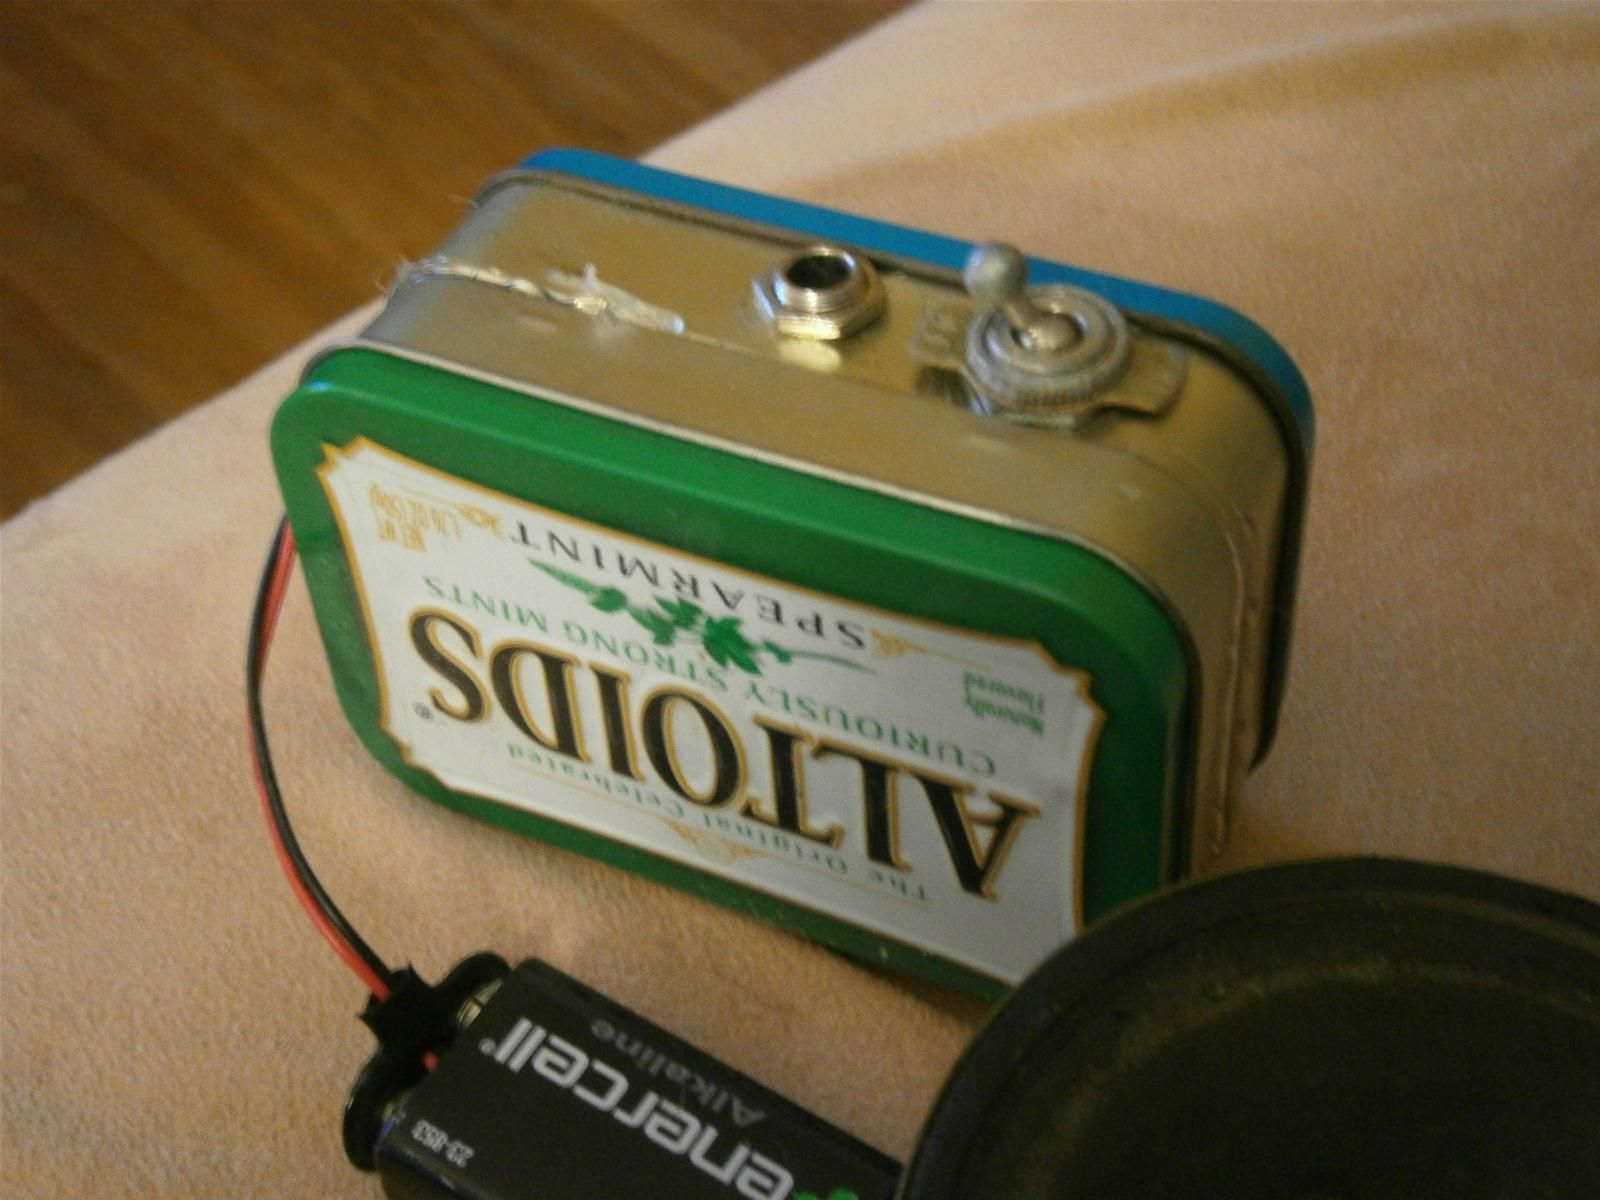 how to build your own mini altoids guitar amp for about 5 awesome ideas guitar diy guitar. Black Bedroom Furniture Sets. Home Design Ideas